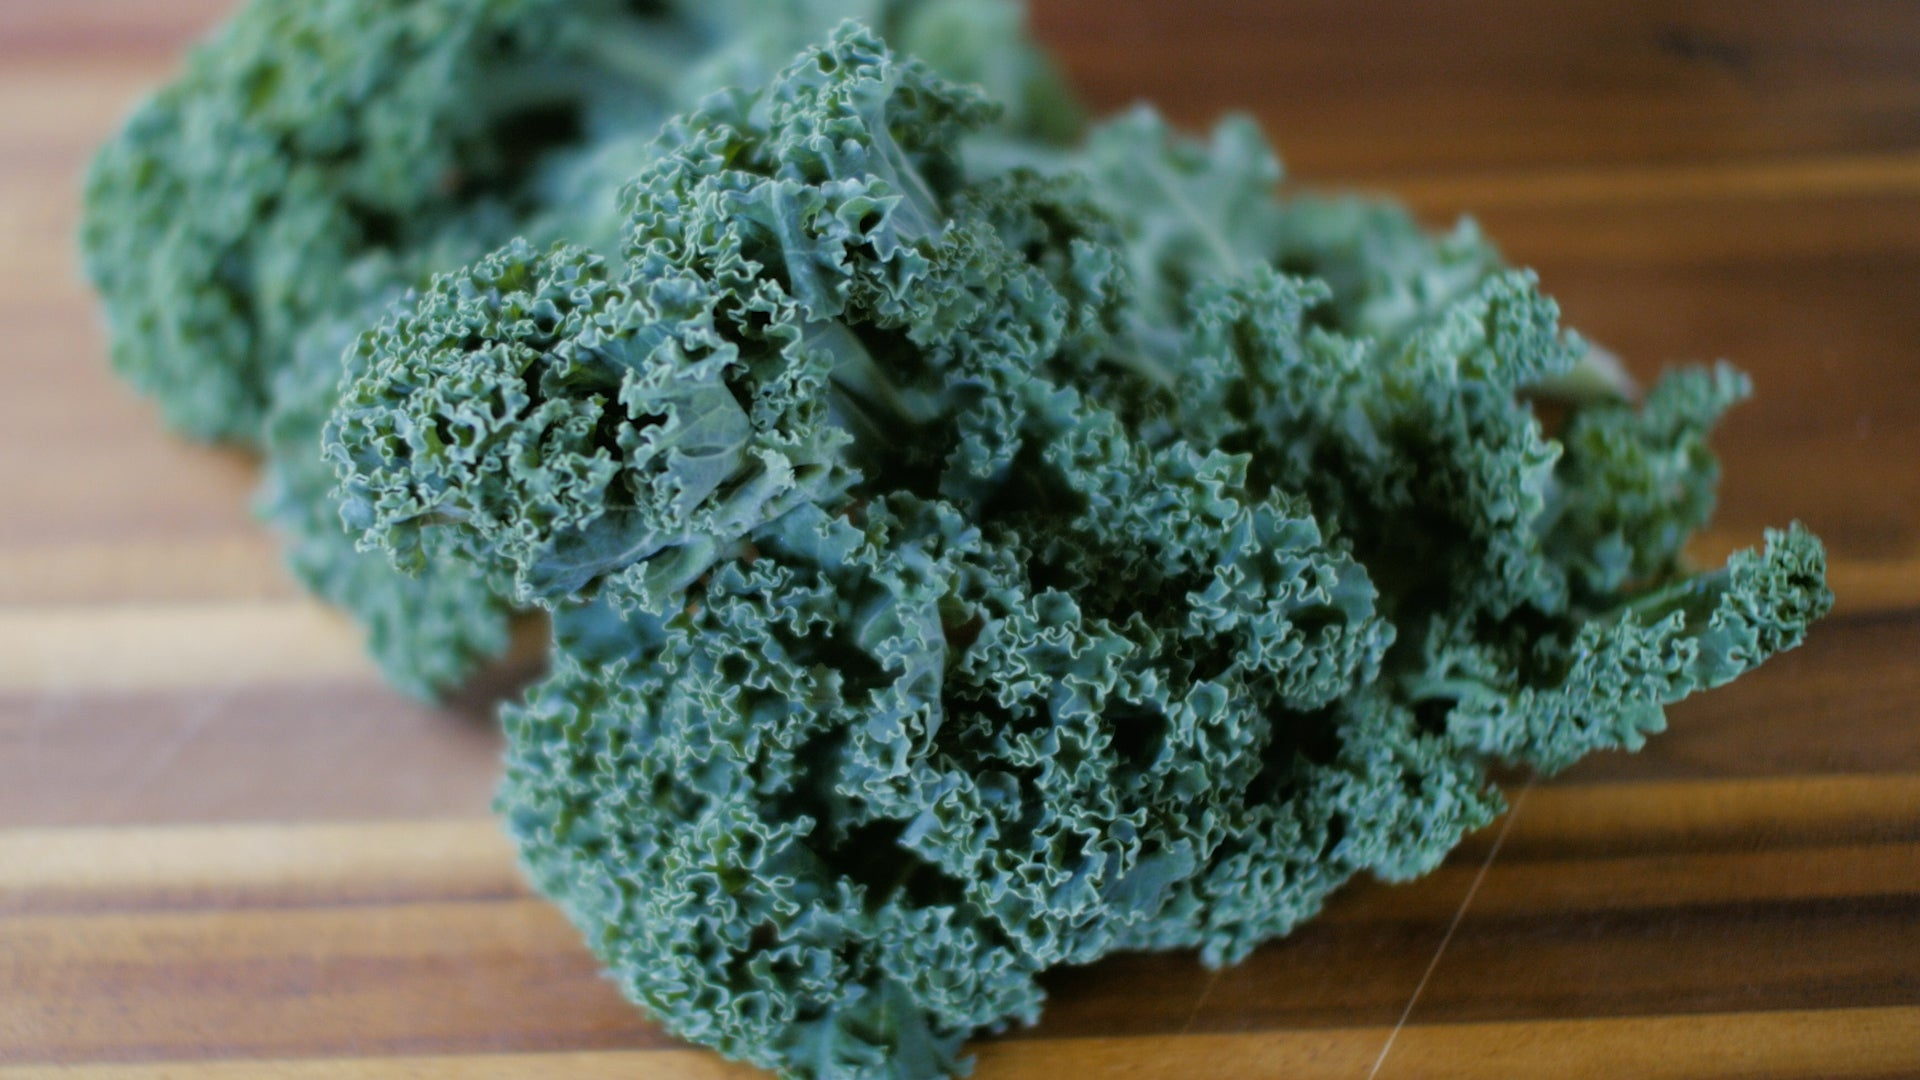 Kale Ranks High on 'Dirty Dozen' Pesticide List